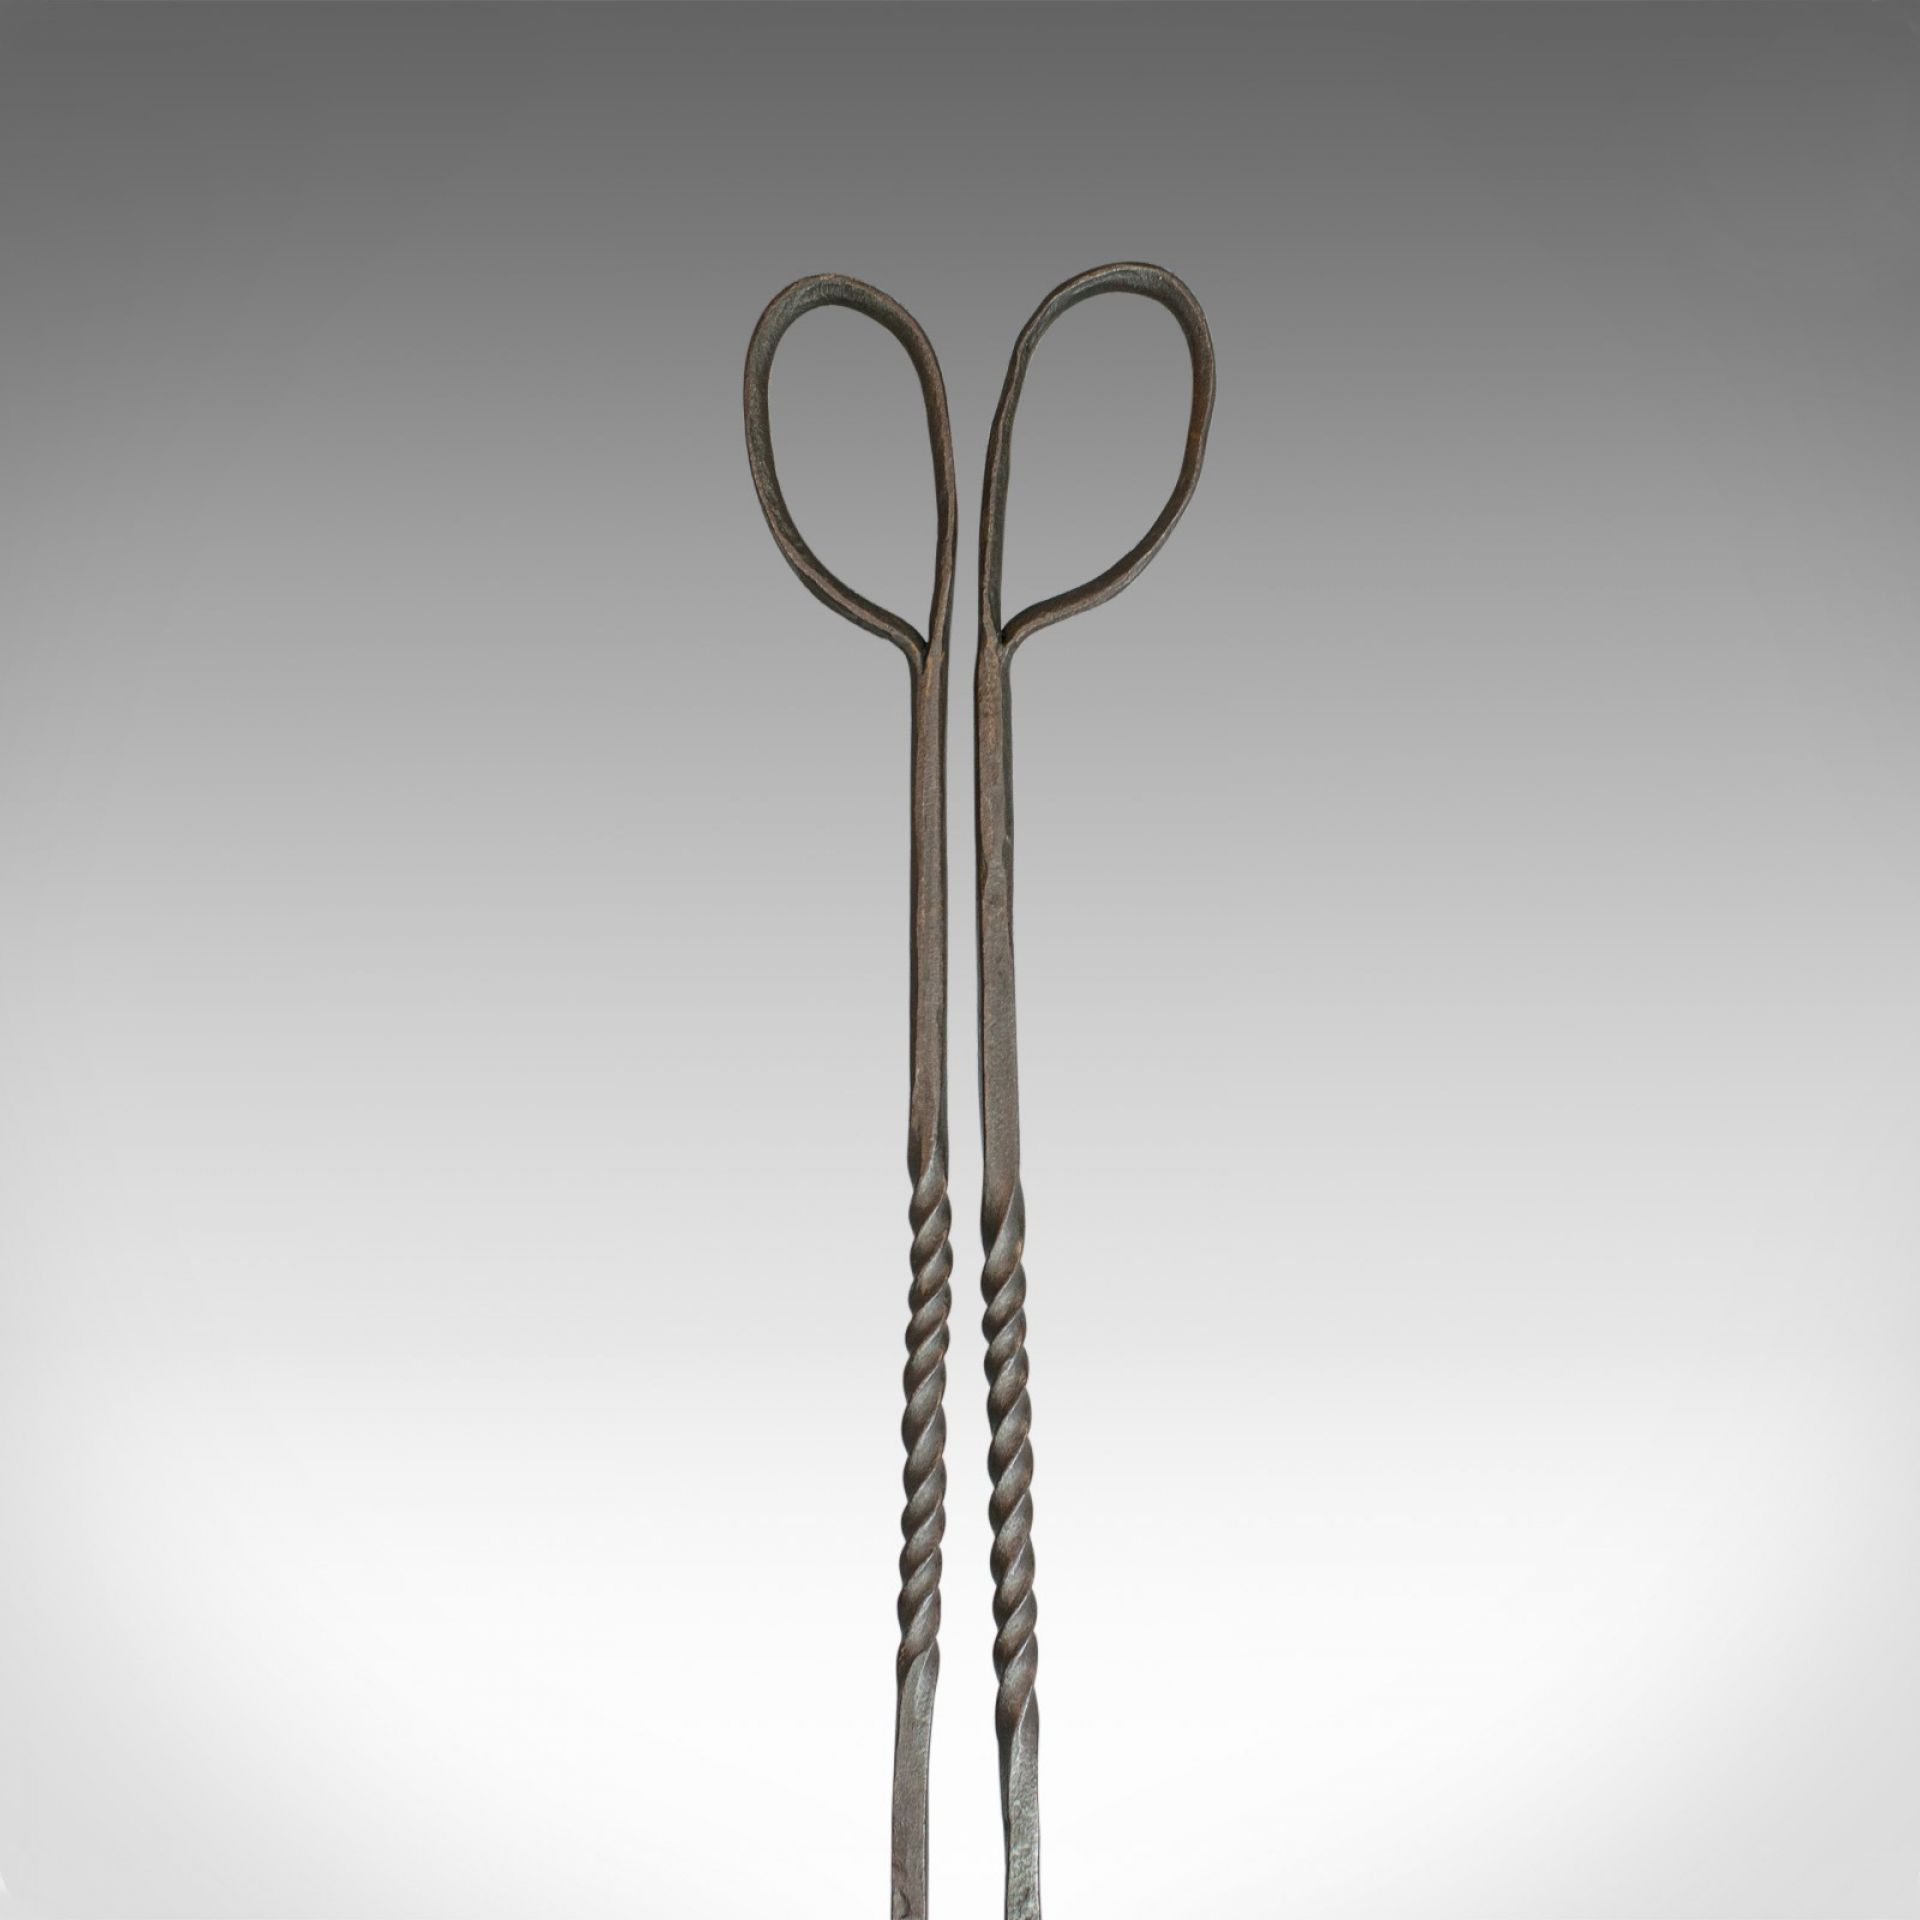 Antique Pair of Large Fire Tongs, Georgian, Hand Forged Iron, Stirrup circa 1800